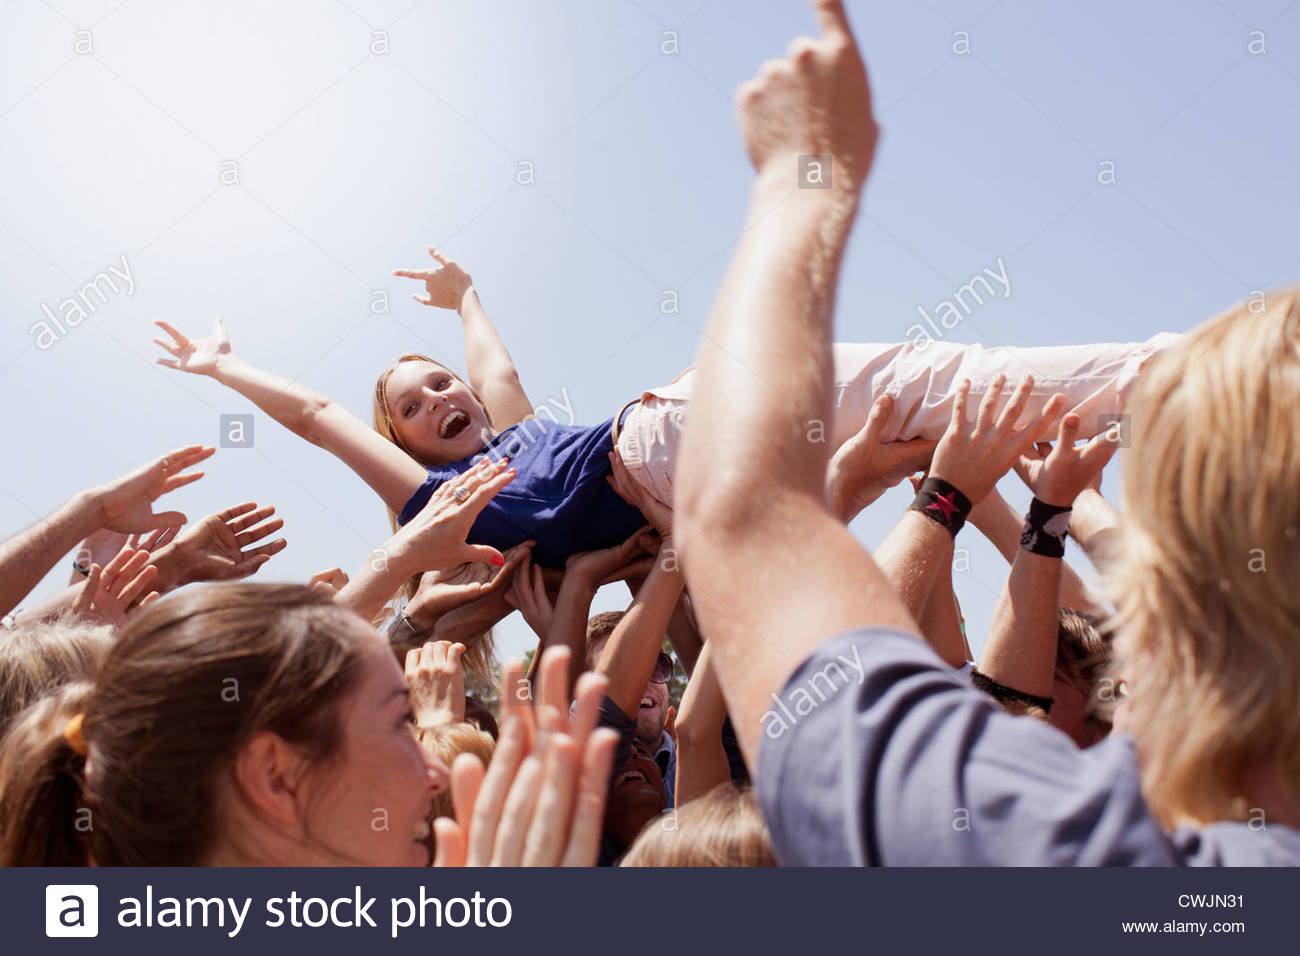 Enthusiastic woman crowd surfing - Stock Image